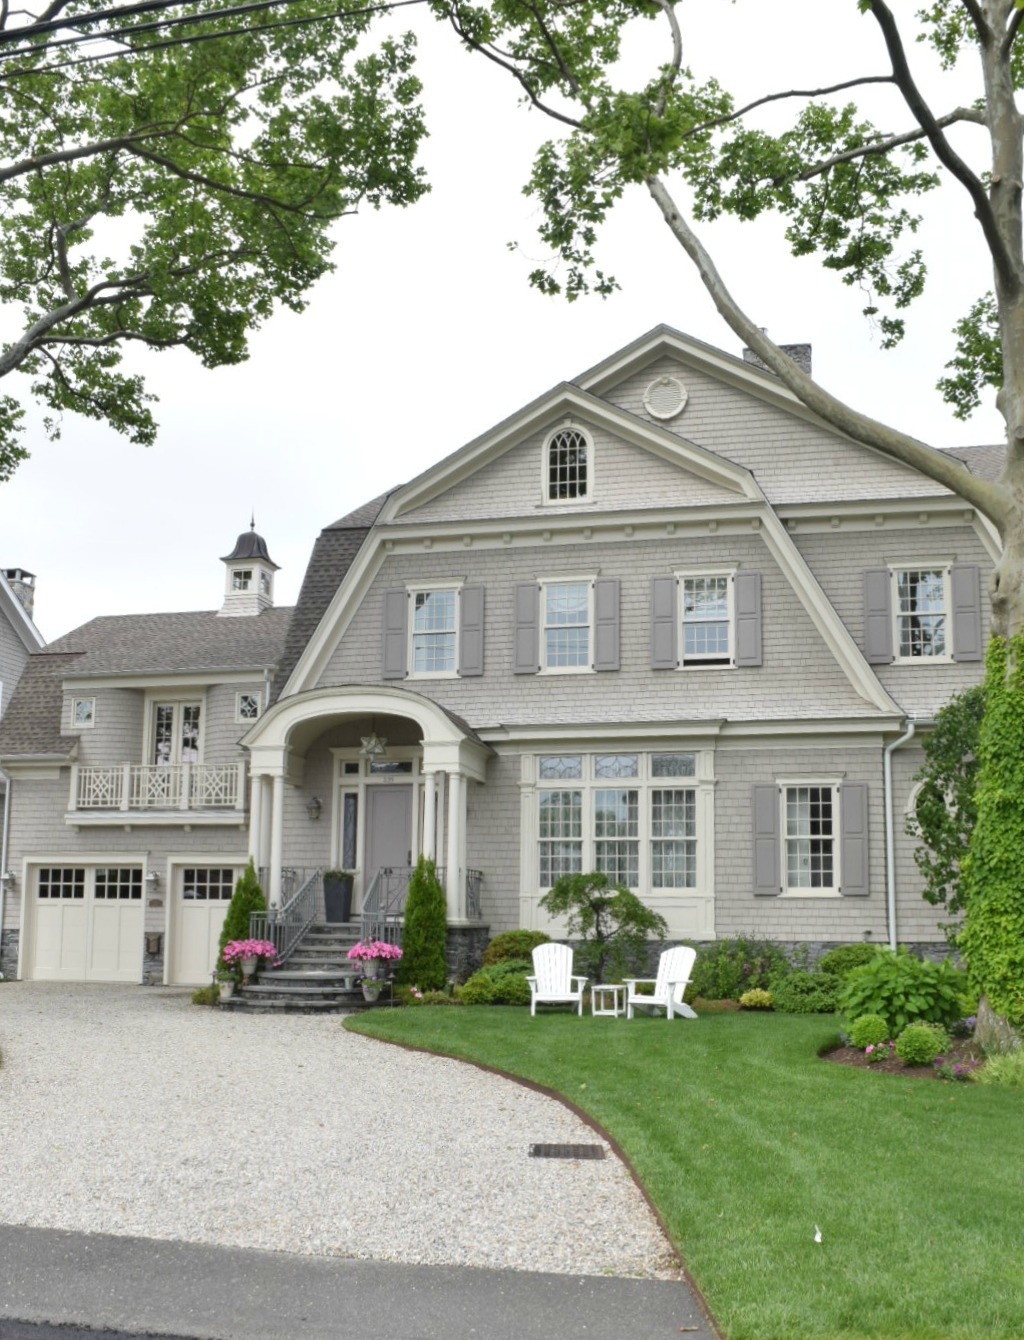 New england homes exterior paint color ideas nesting with grace - Exterior painting vancouver property ...